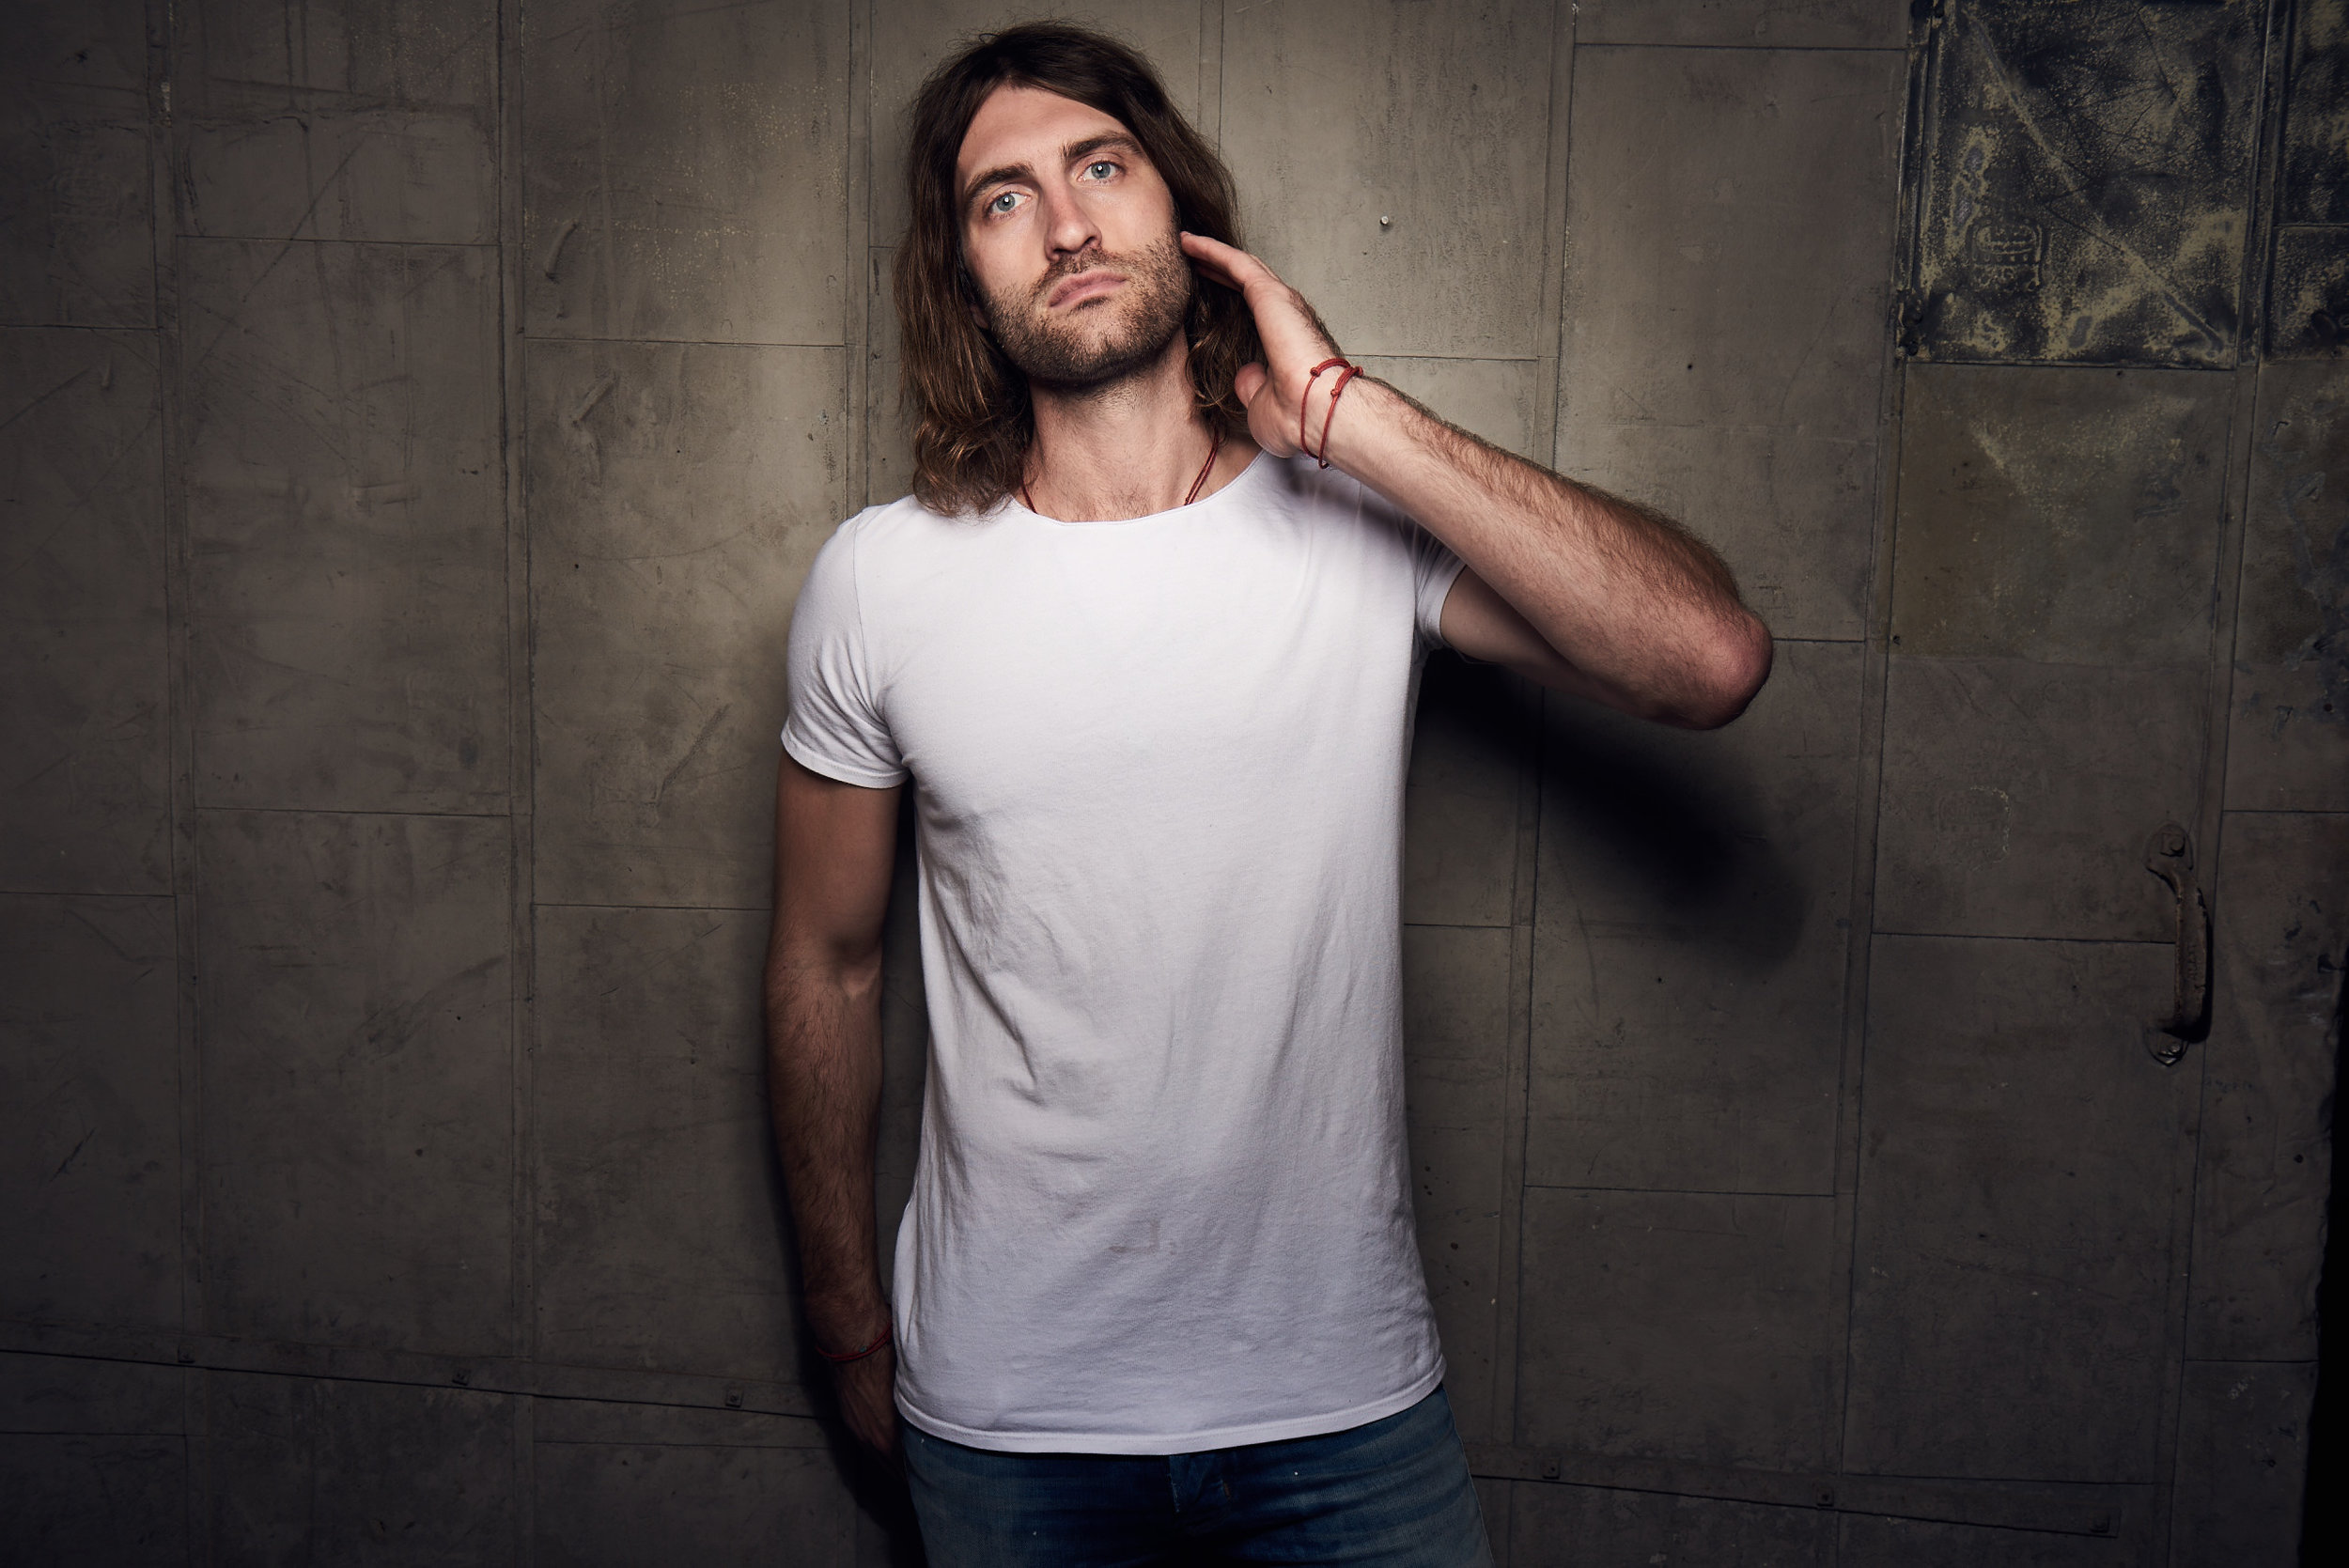 Ryan Hurd has written songs for Tim McGraw and Blake Shelton, but now he's going out on his own and joining fiancé, Maren Morris, on tour. With two million streams on Spotify, he's already positioned to become a breakout star.... - edited for clarity and length